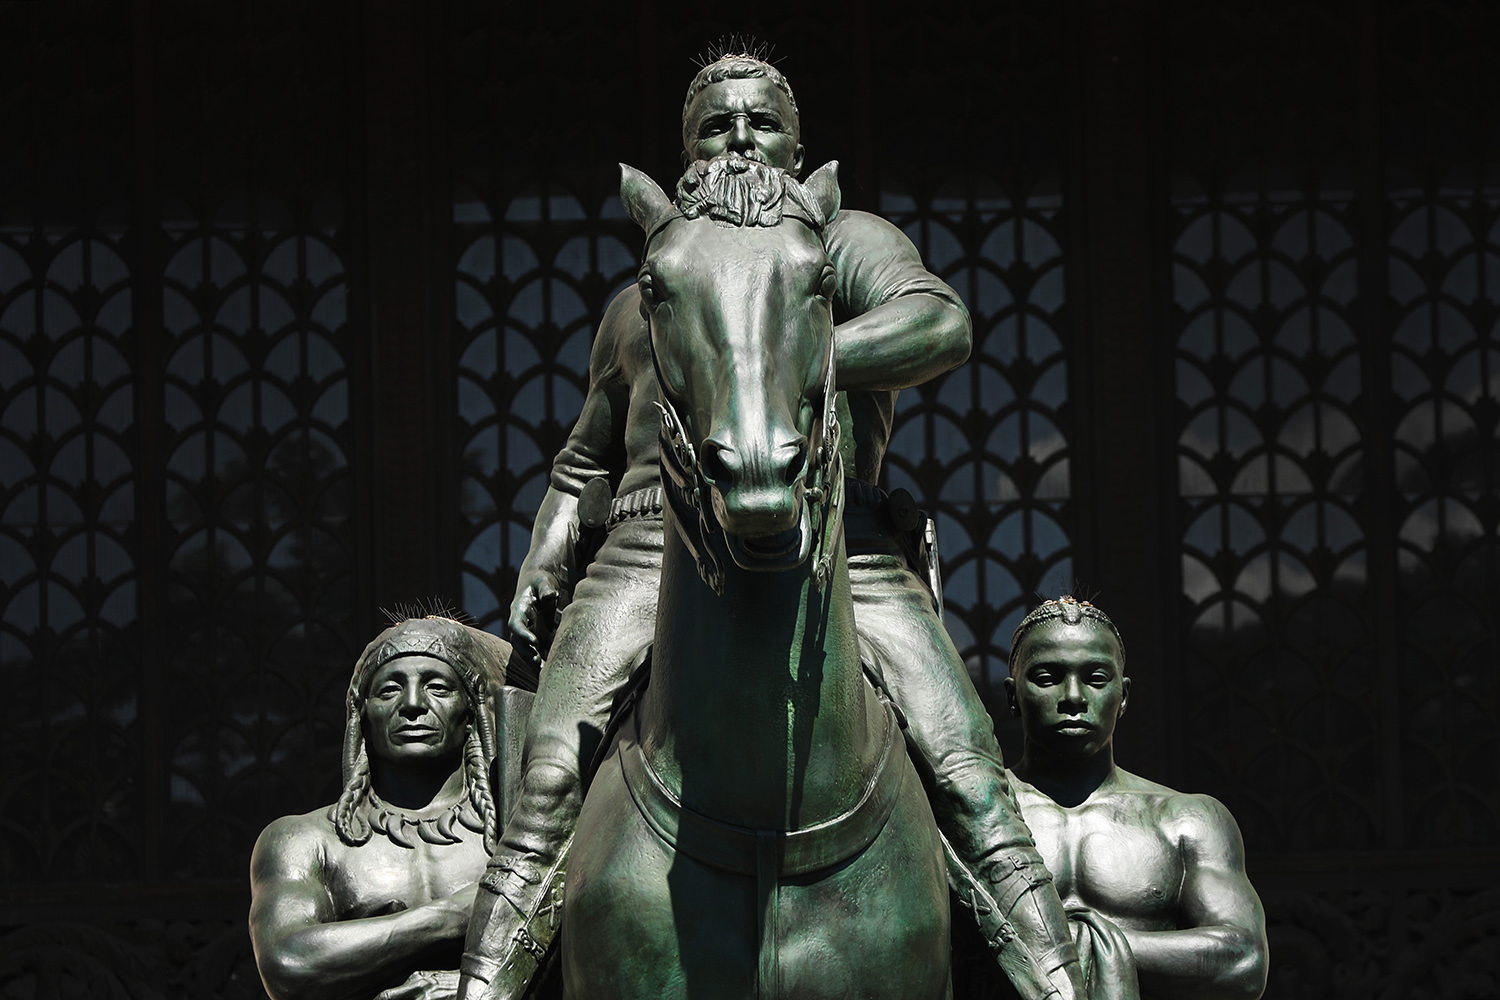 Roosevelt-statue-museum-natural-history-new-york-GettyImages-1251355114.jpg